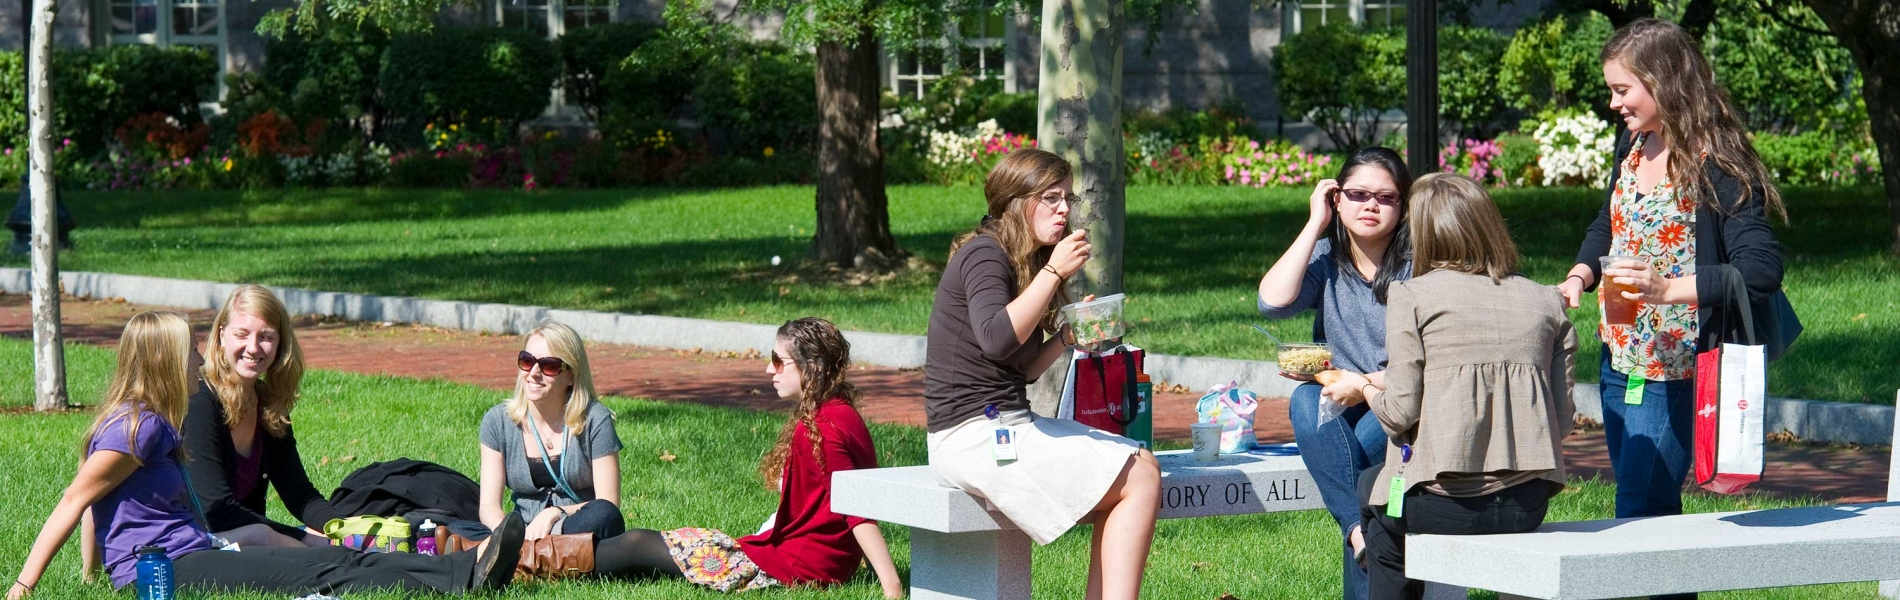 Campus lawn in summertime with students